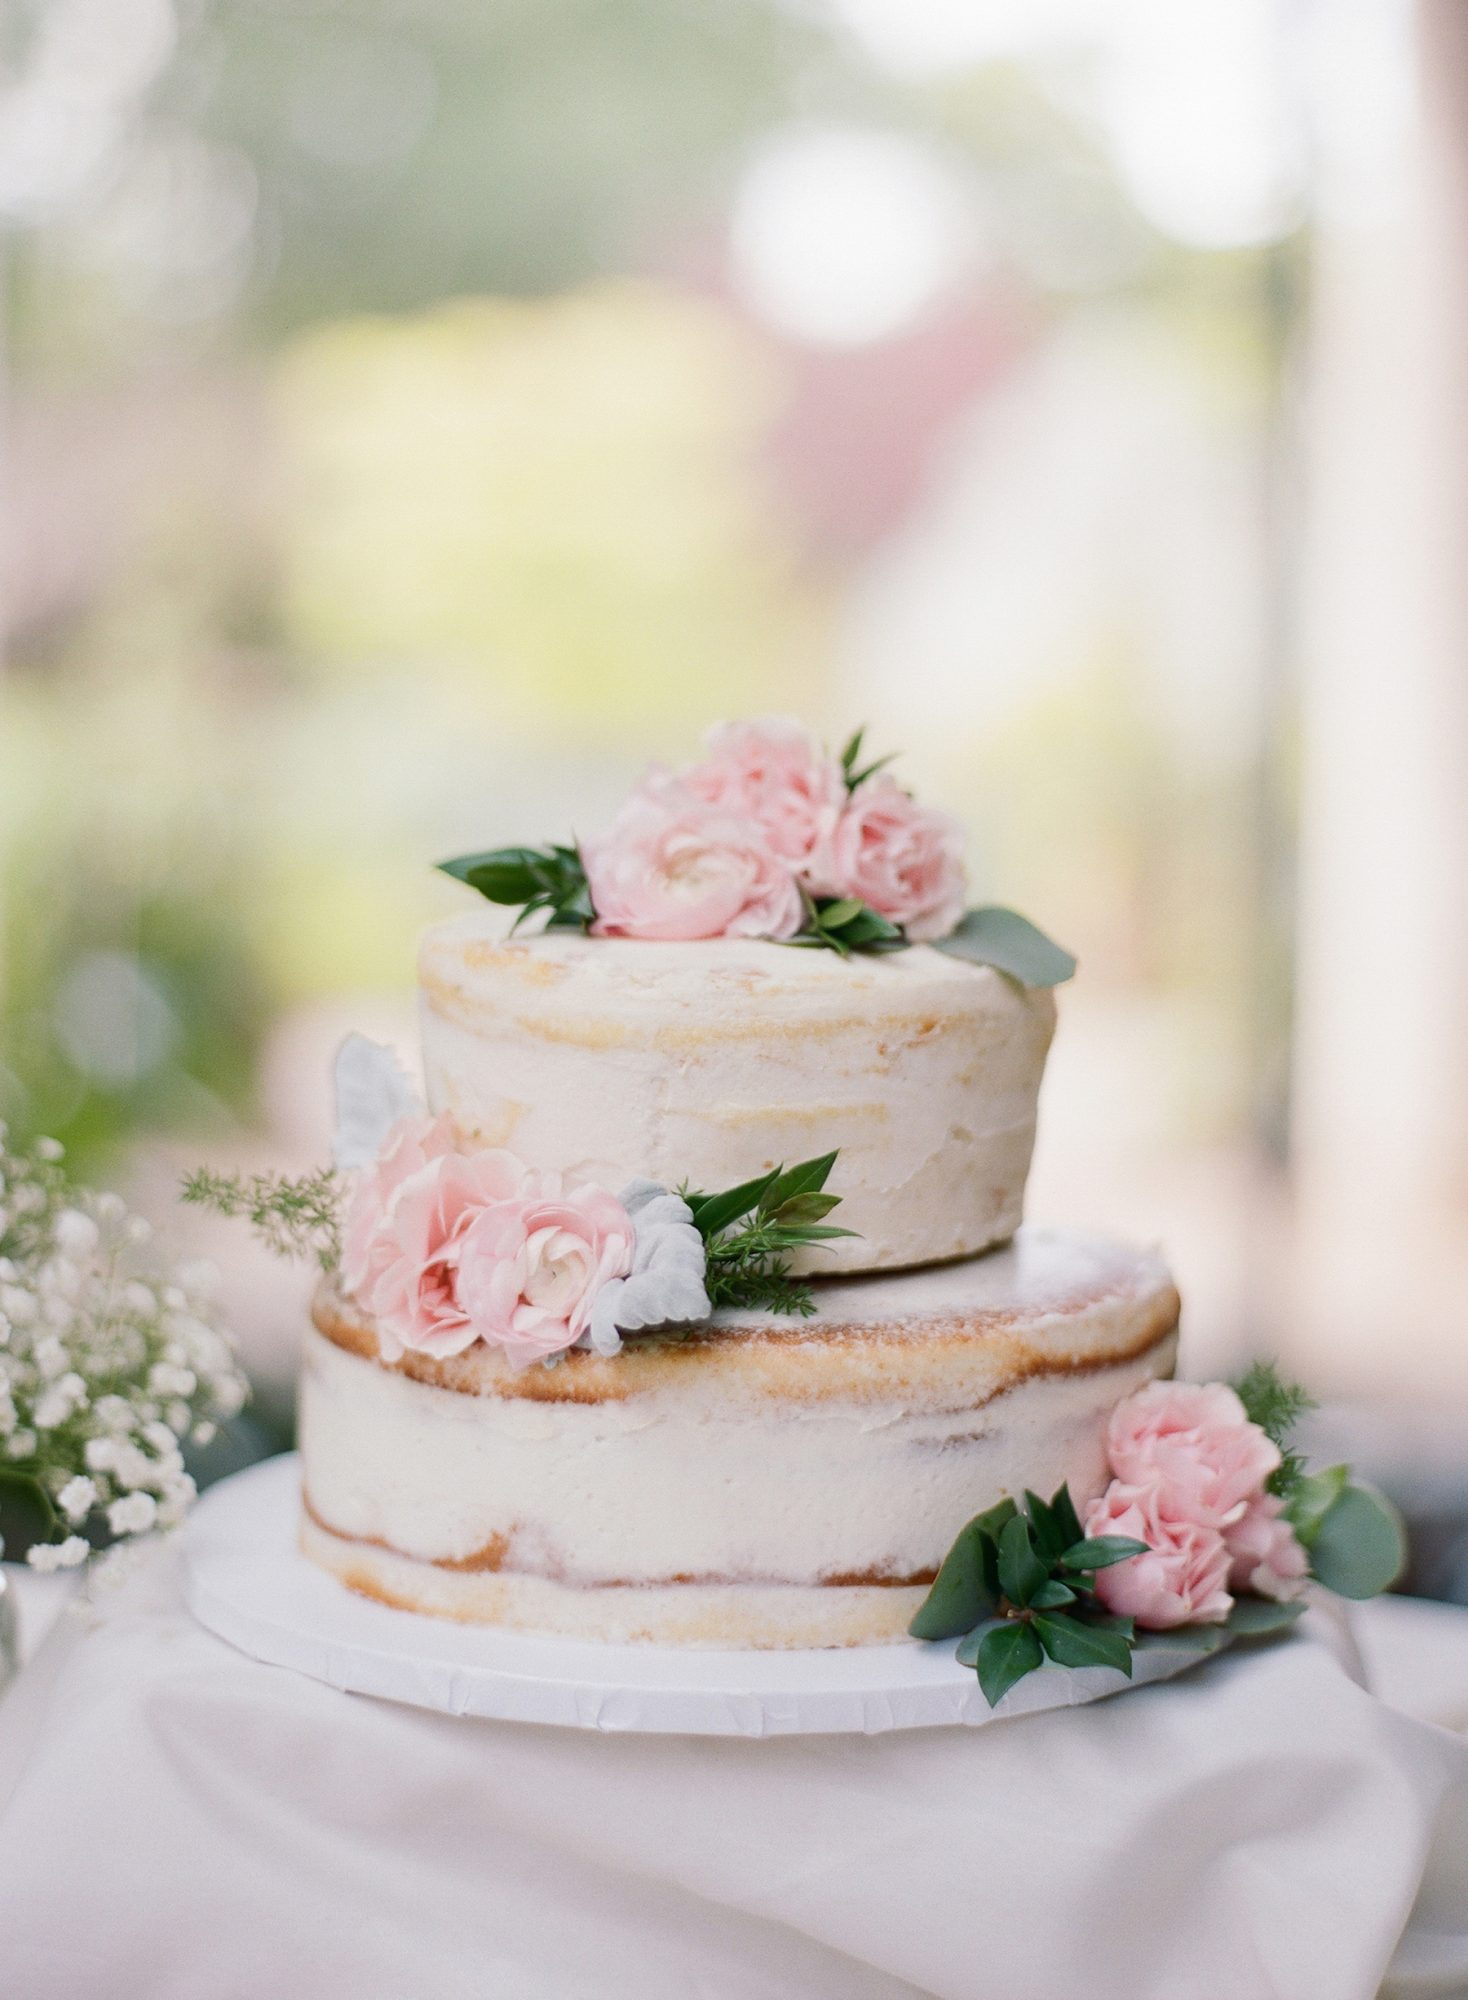 Pink flowers were used to spruce up this wedding cake. It was coated with just a bit of icing.